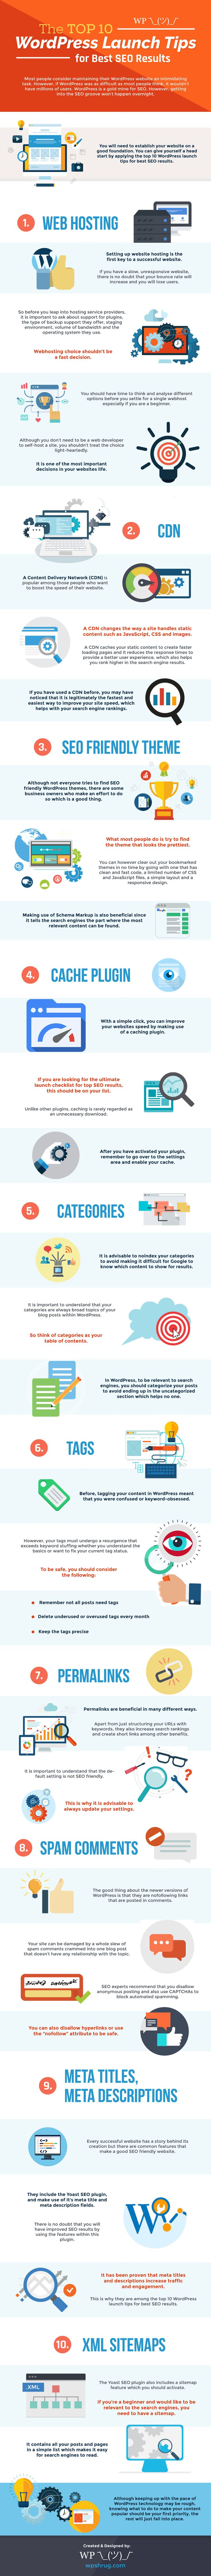 Is your blog SEO friendly? This infographic contains tips that will help make your blog more searchable and thus more findable.